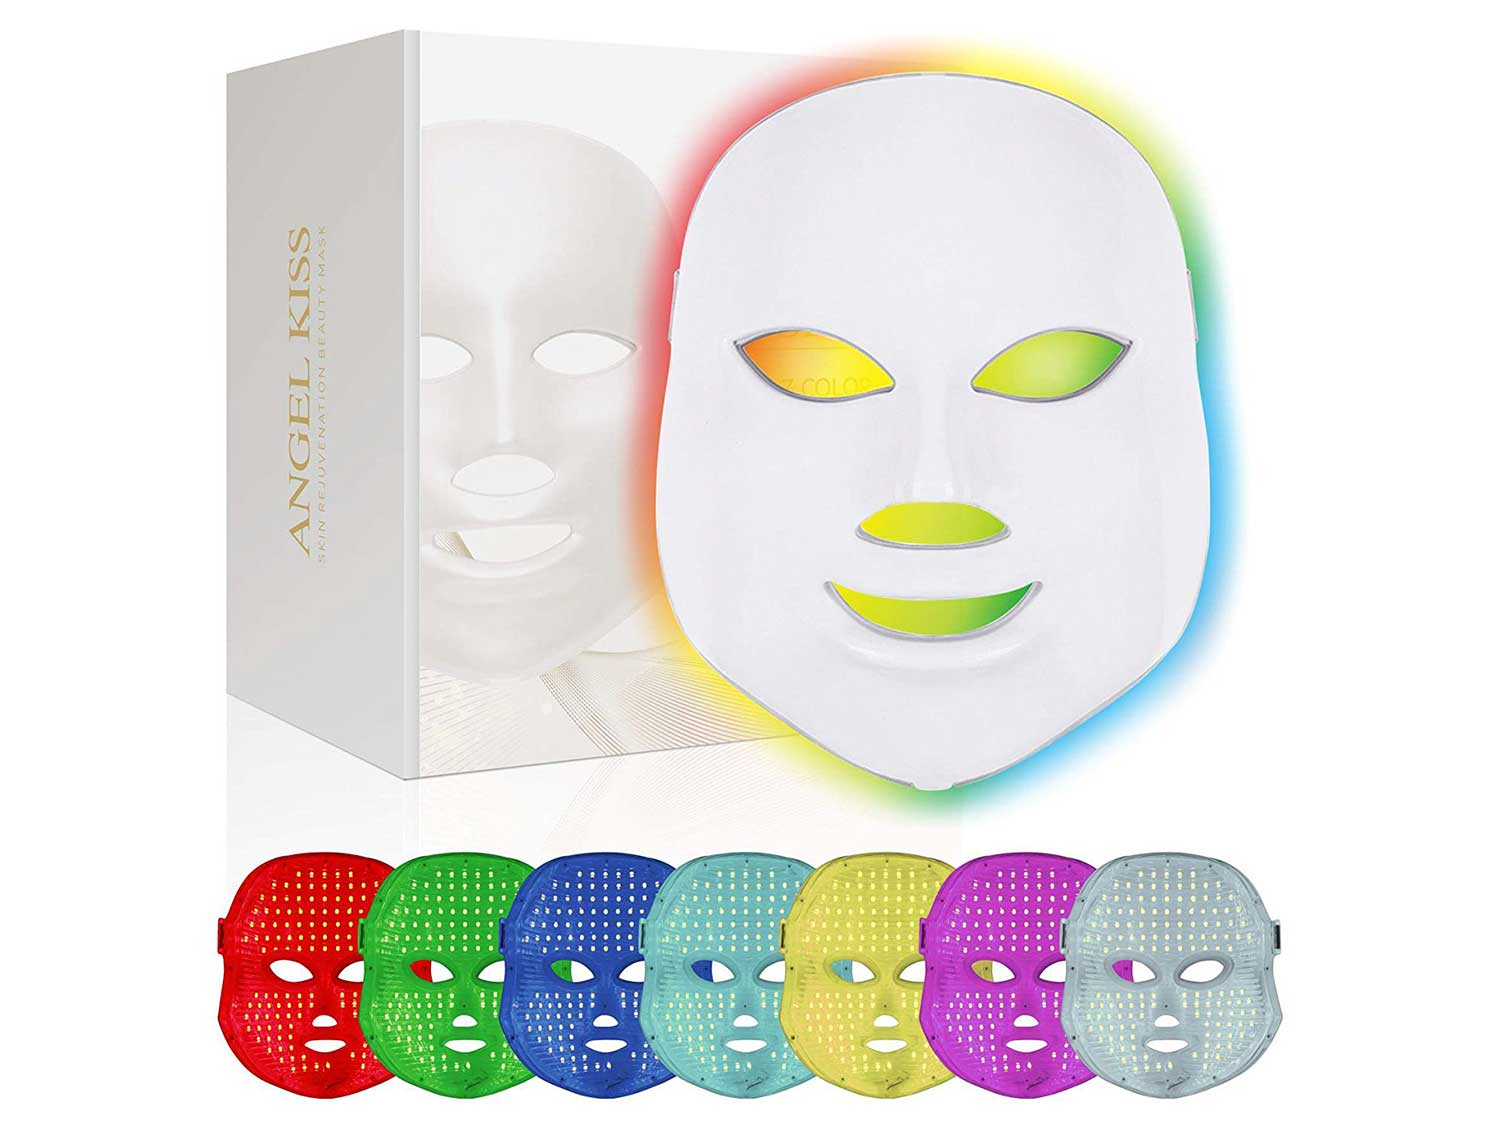 Face Led Mask -Angel Kiss 7 Color Blue Red Light Therapy Photon Mask Facial Skin Rejuvenation Firming Lift PDT Skin Care Mask